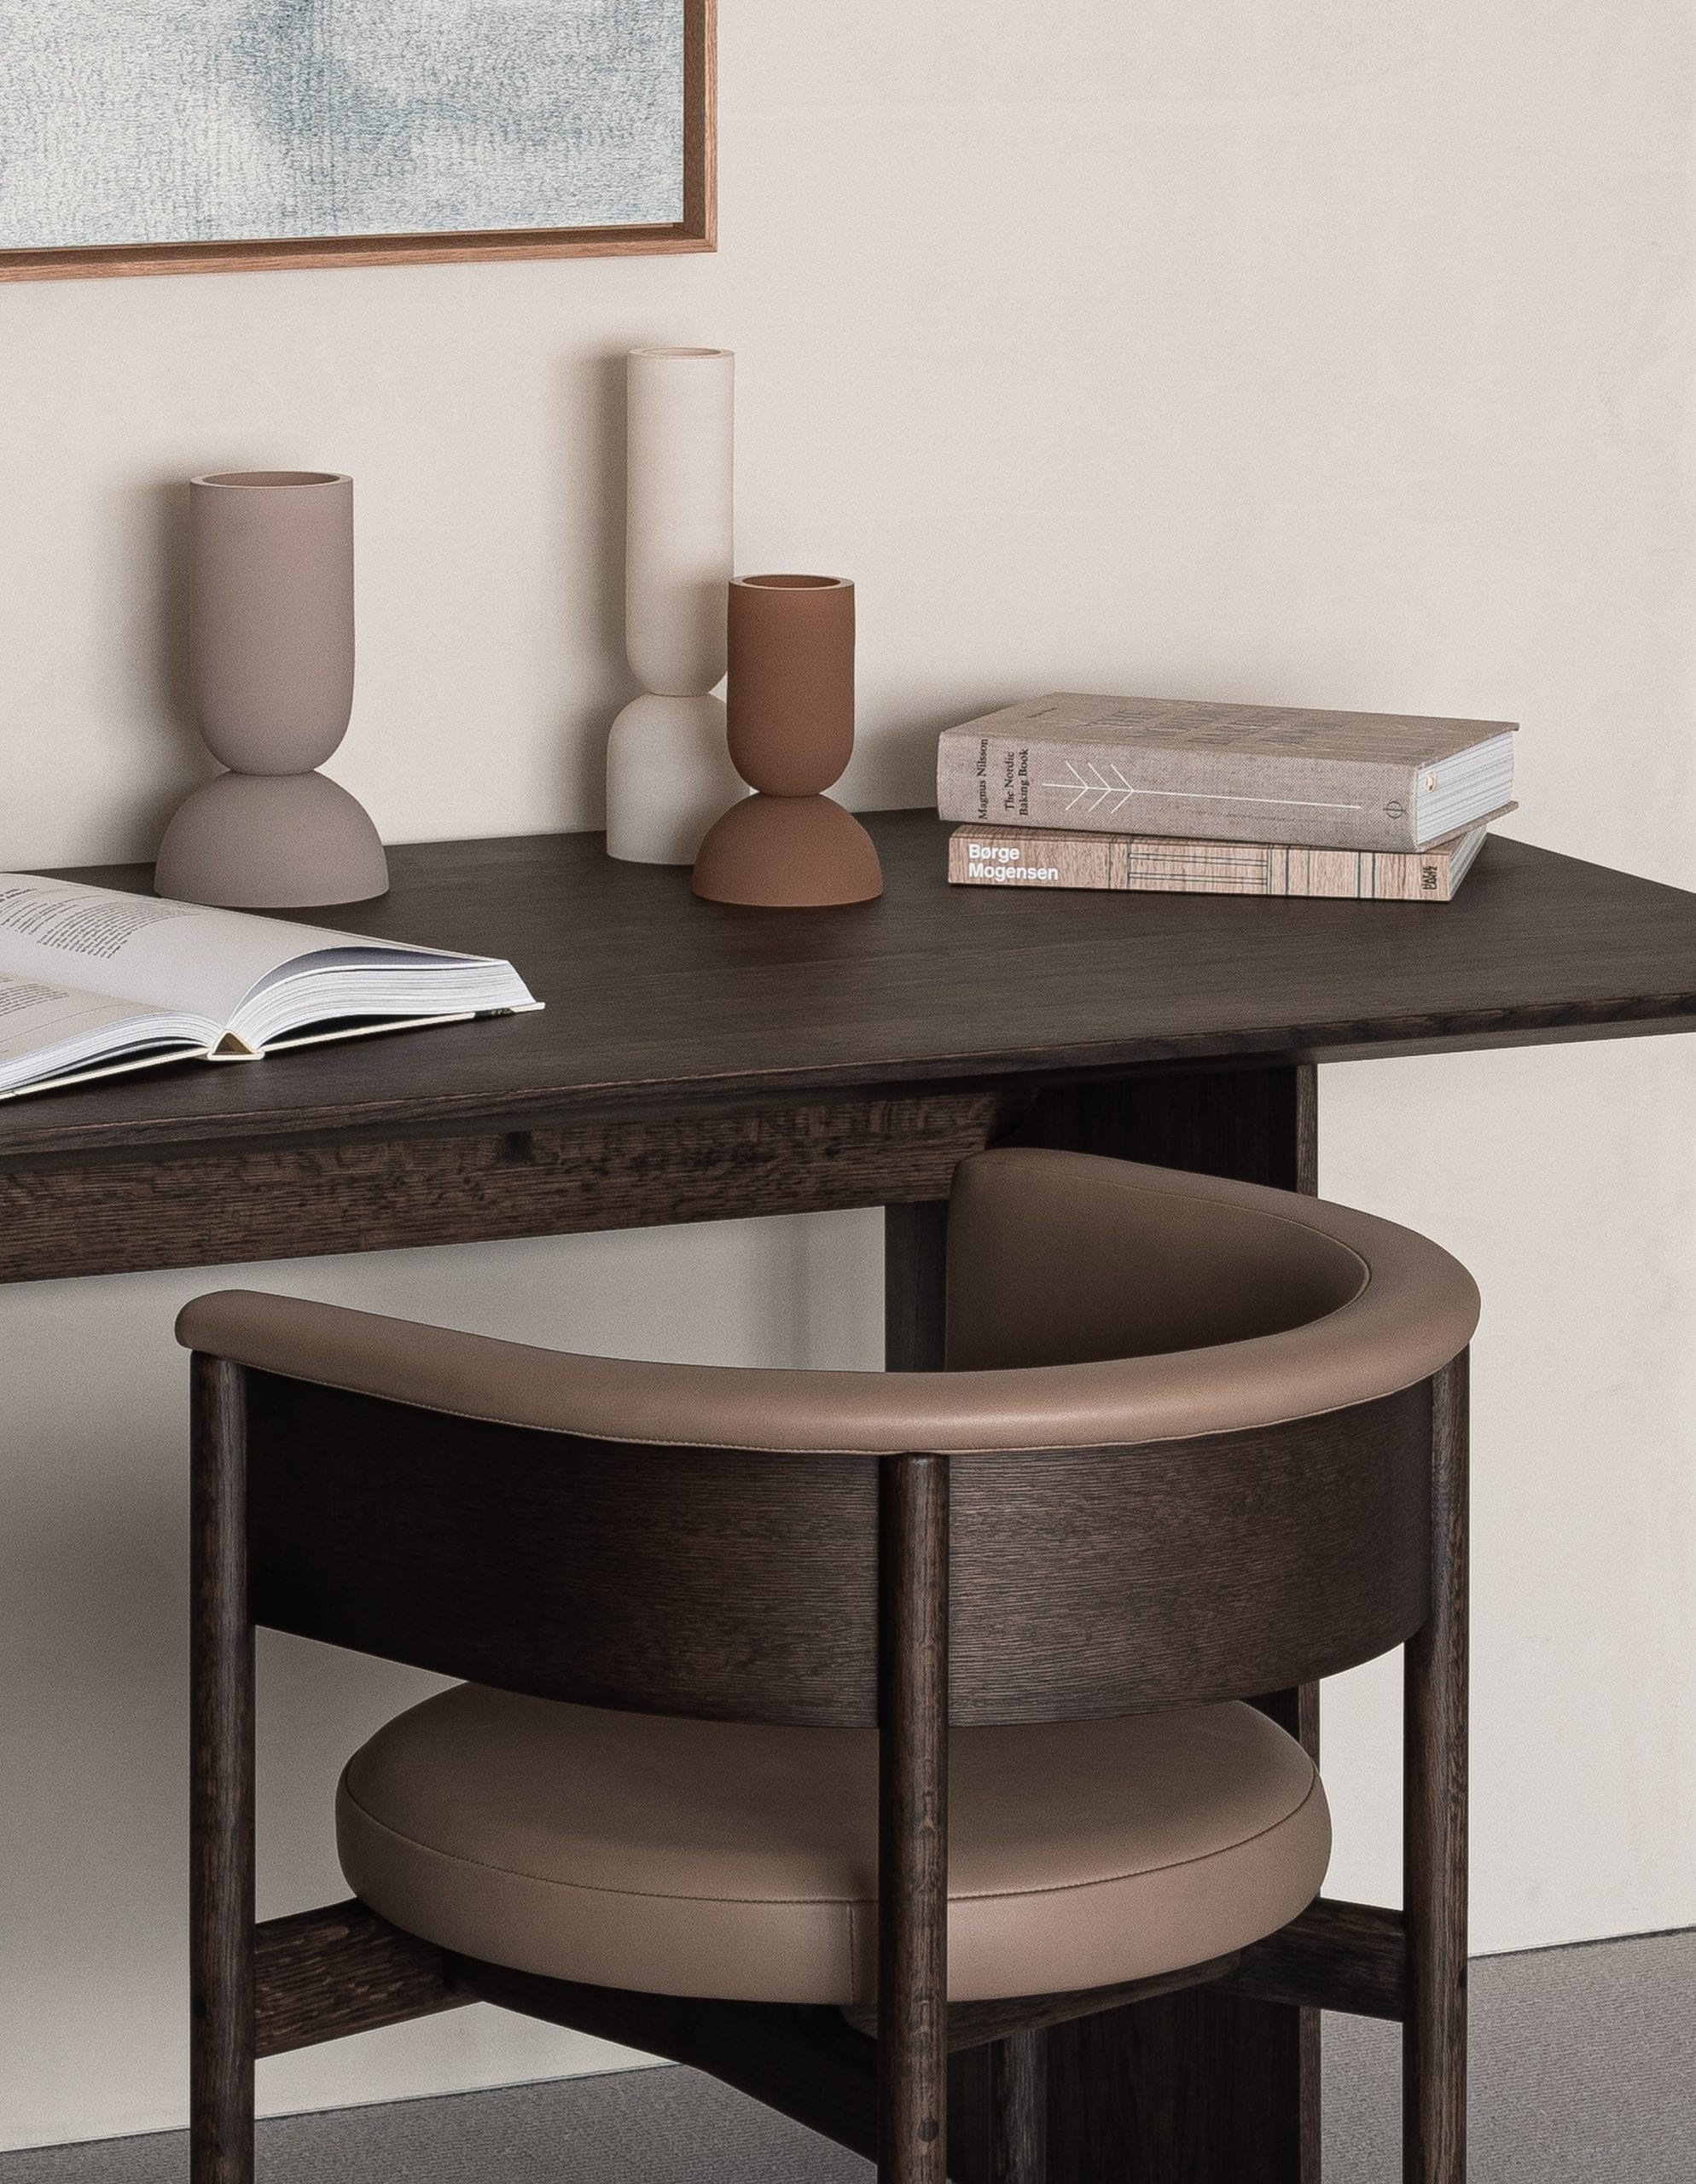 A small dark wood desk with wooden chair